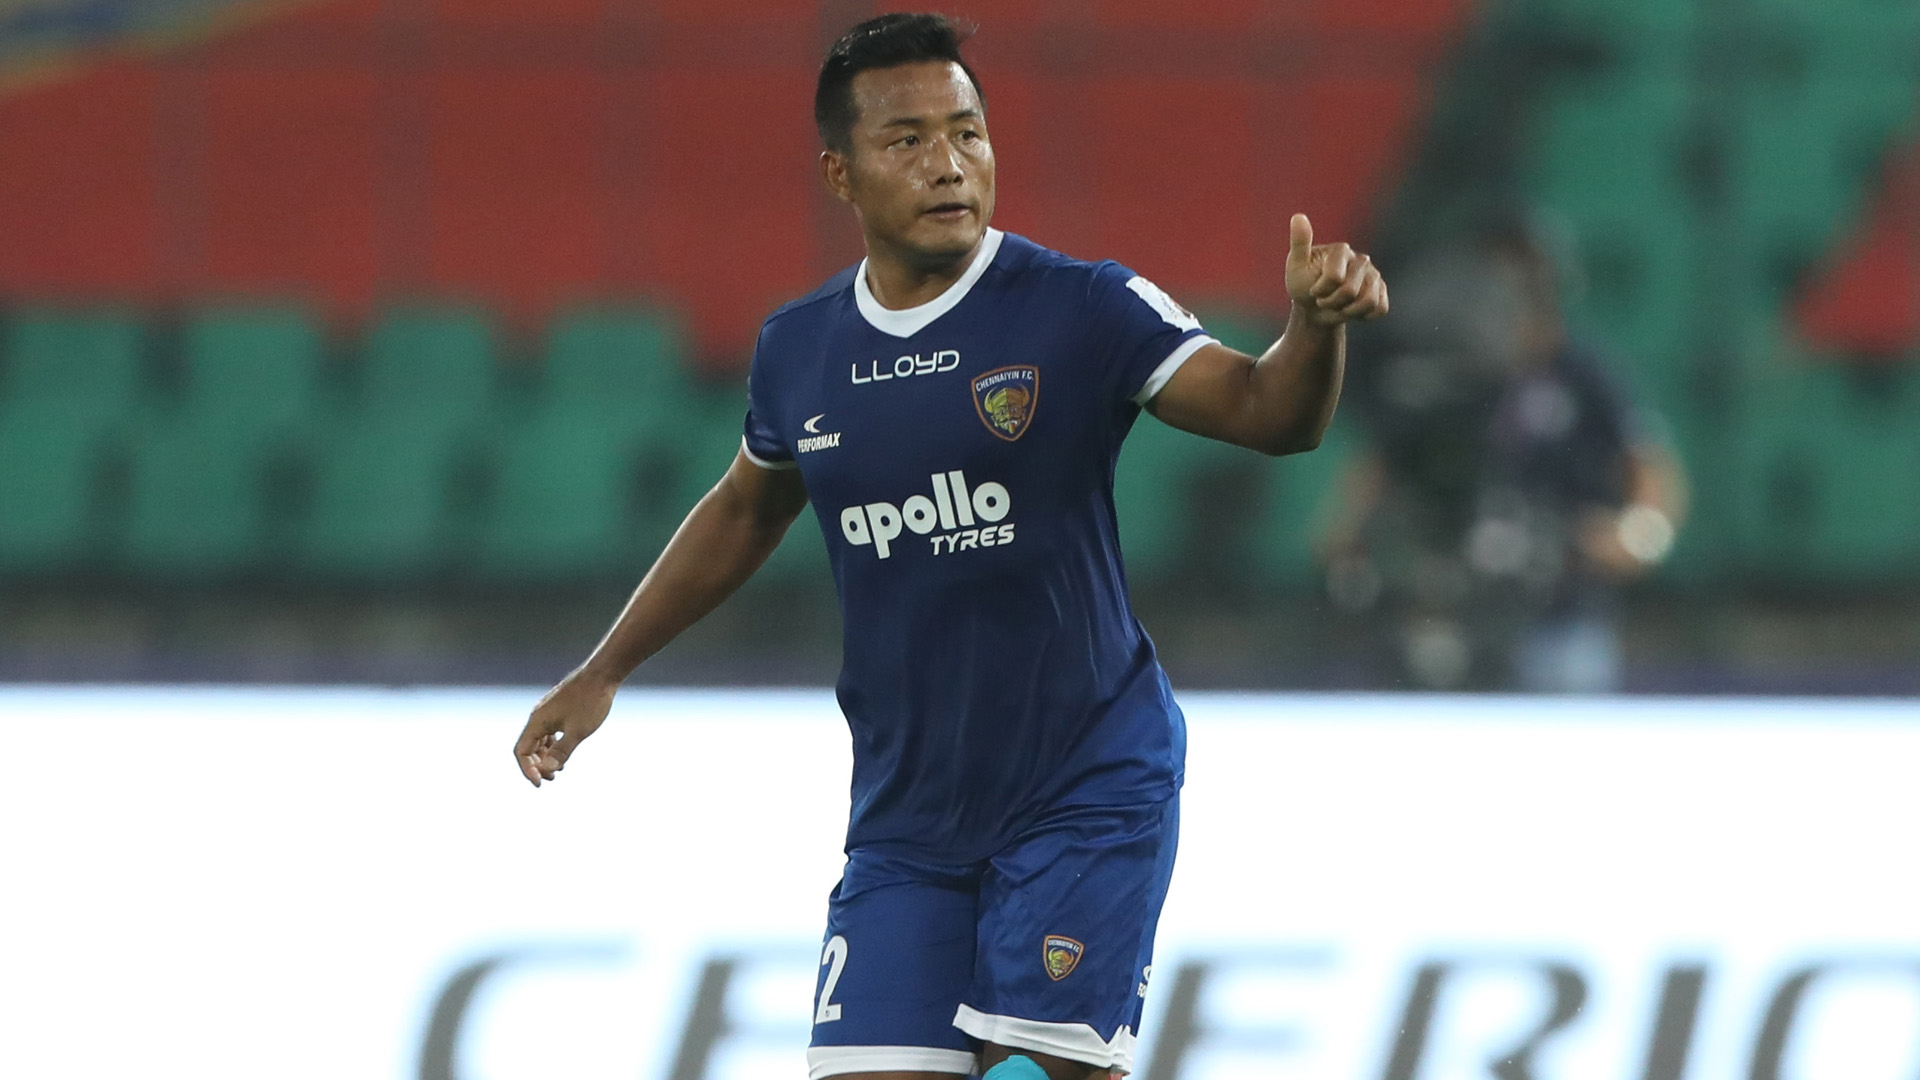 ISL: East Bengal rope in India international striker Jeje Lalpekhlua